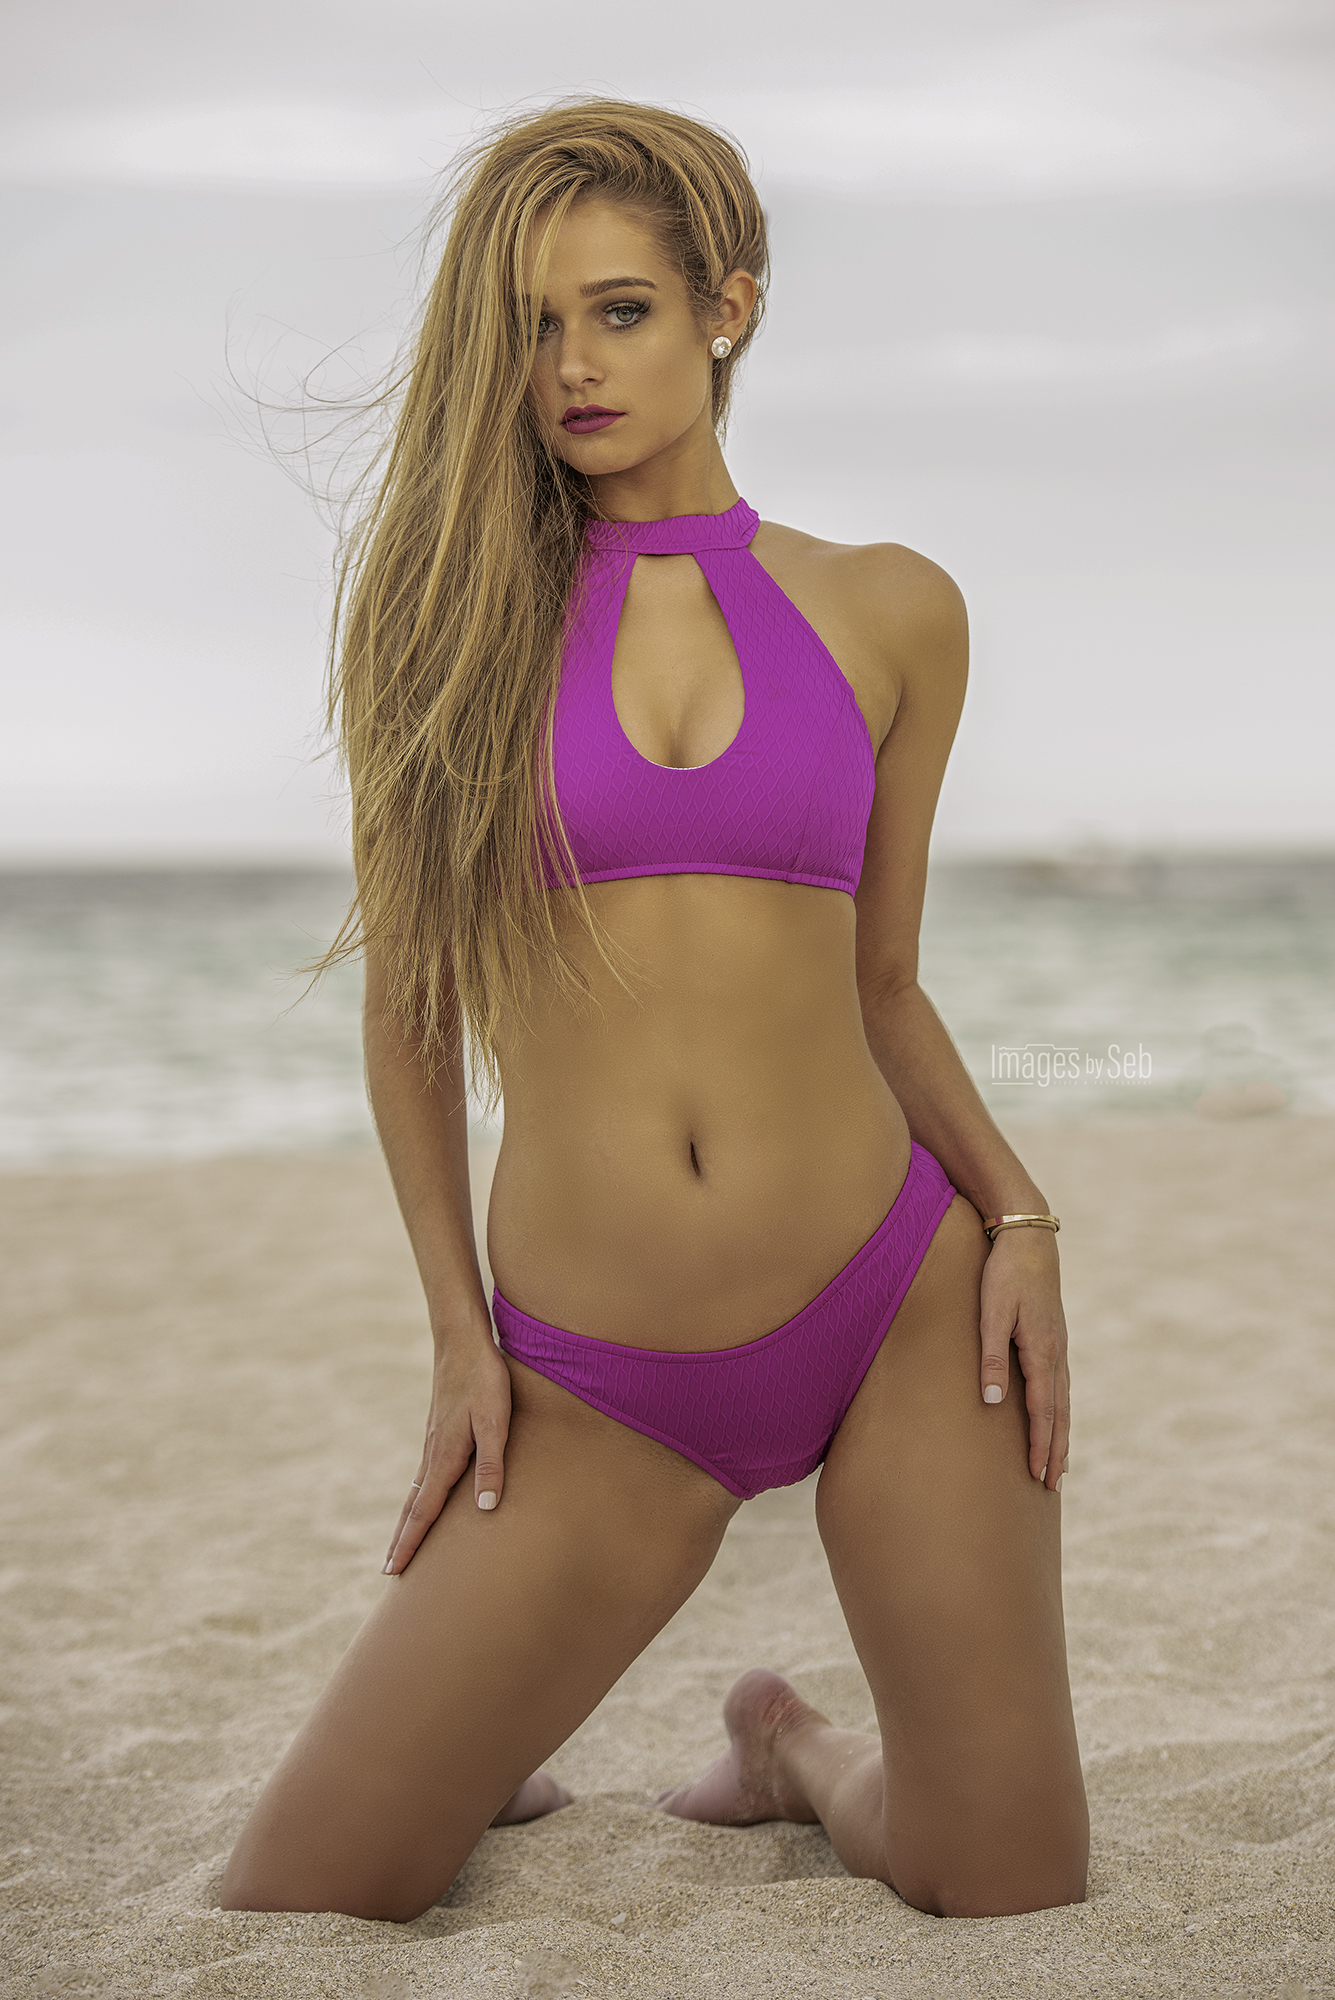 Swimsuit Photography